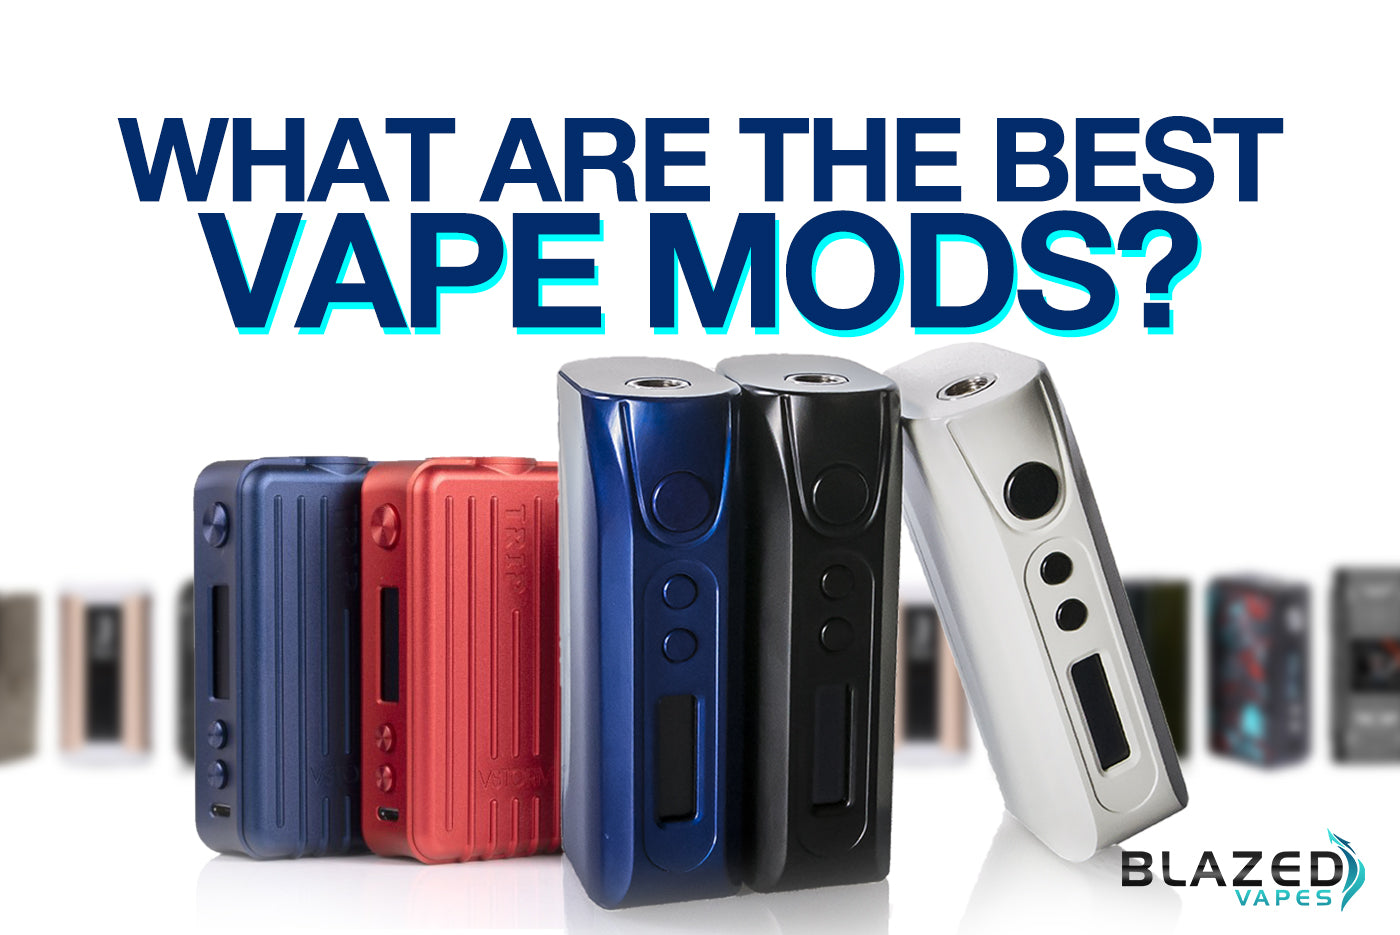 What Are the Best Vape Mods?